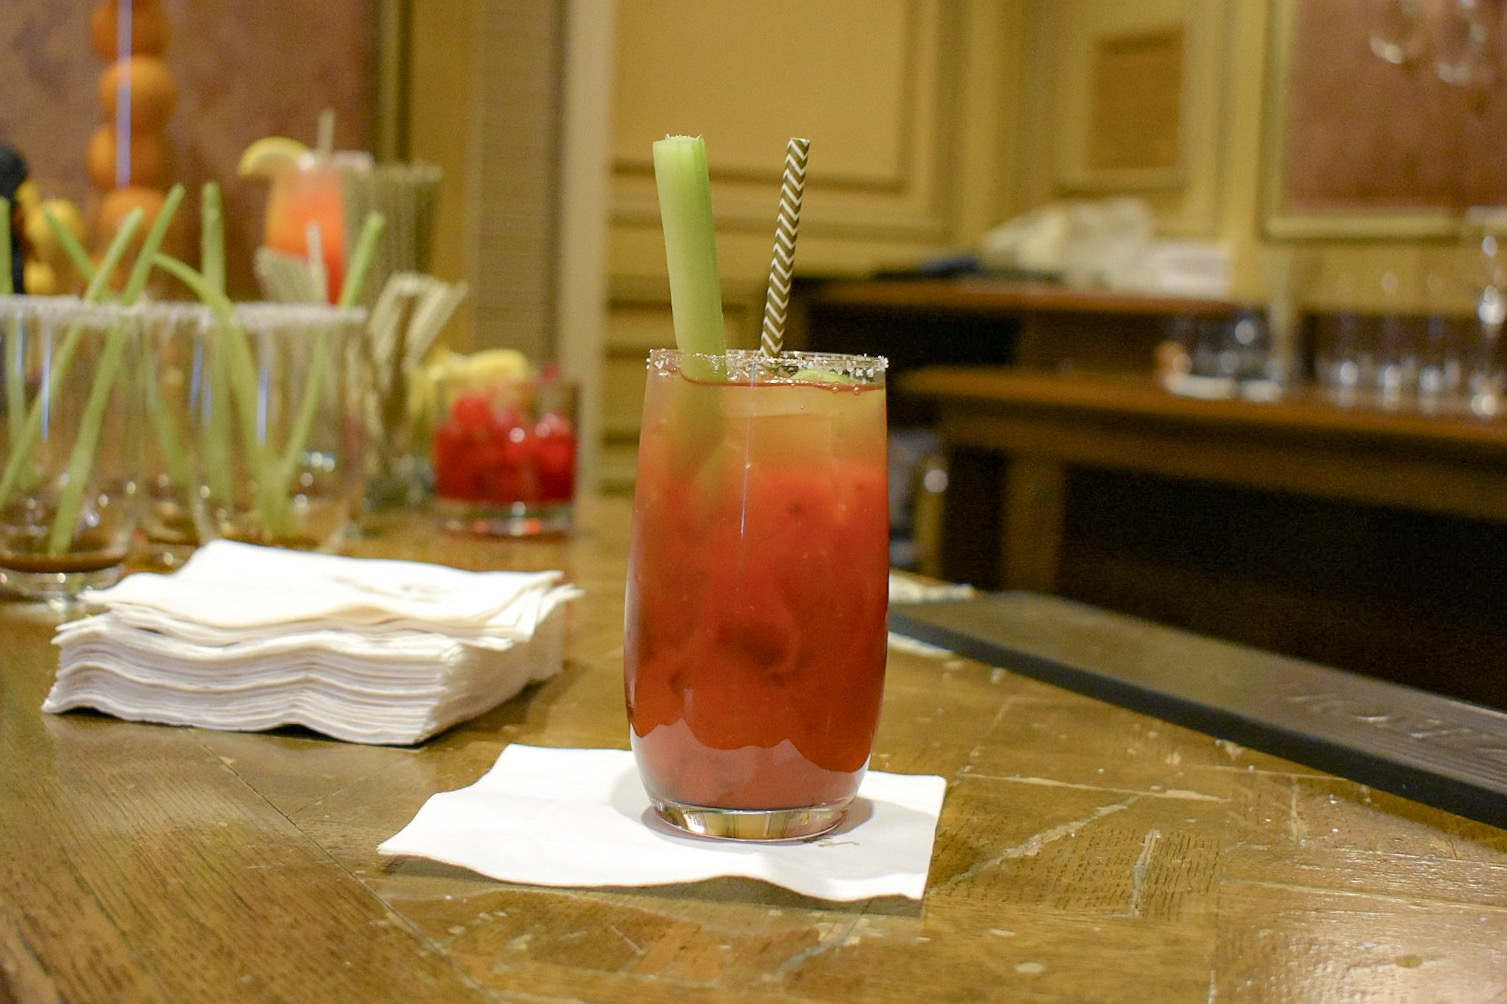 westgate hotel le fontainebleau room sunday brunch bloody mary obsessed 3.jpg